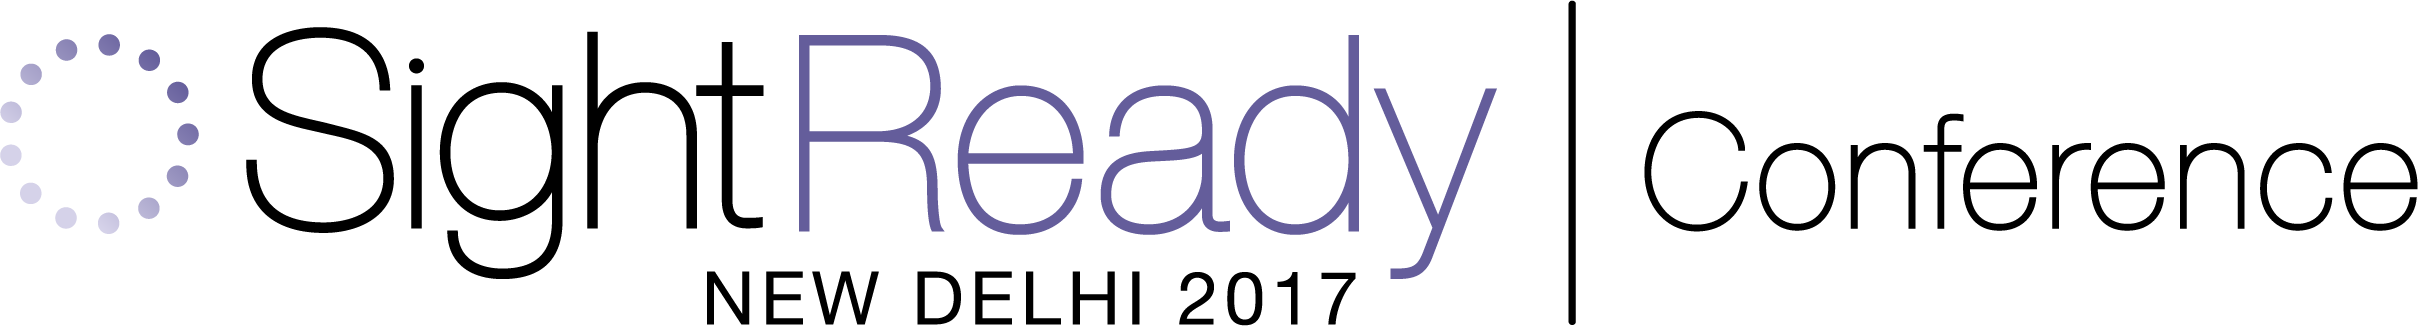 SightReady_Conference-2017-Logo_RGB.png